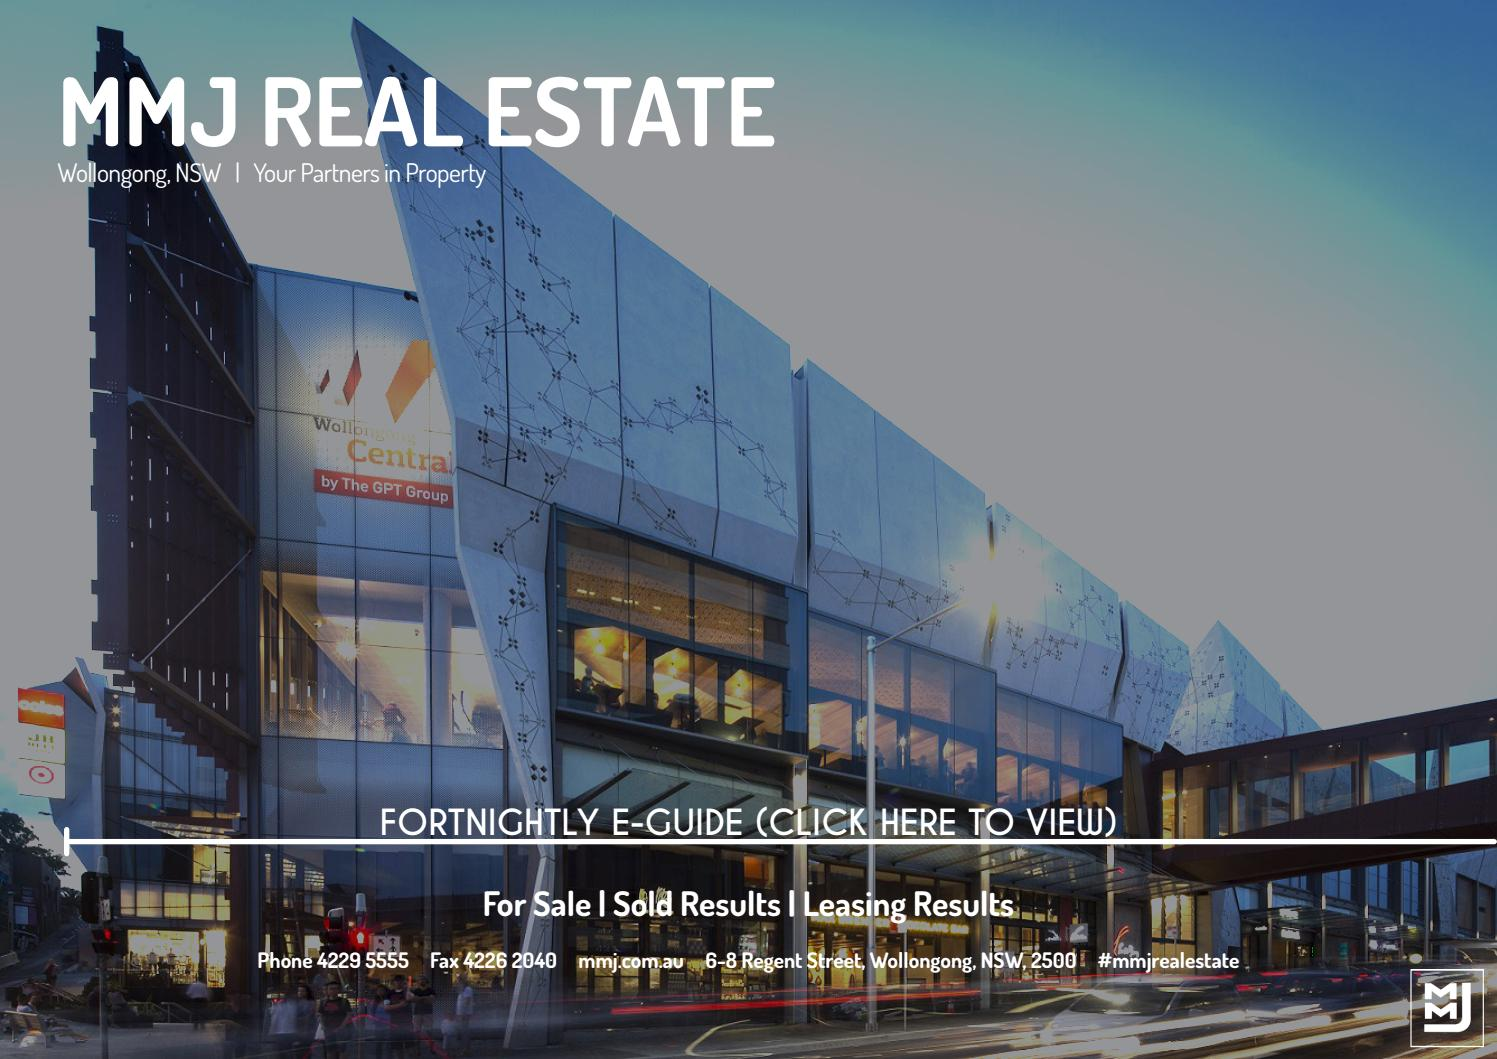 Mmj Fortnightly E Guide 11 08 2017 By Real Estate Wollongong Issuu